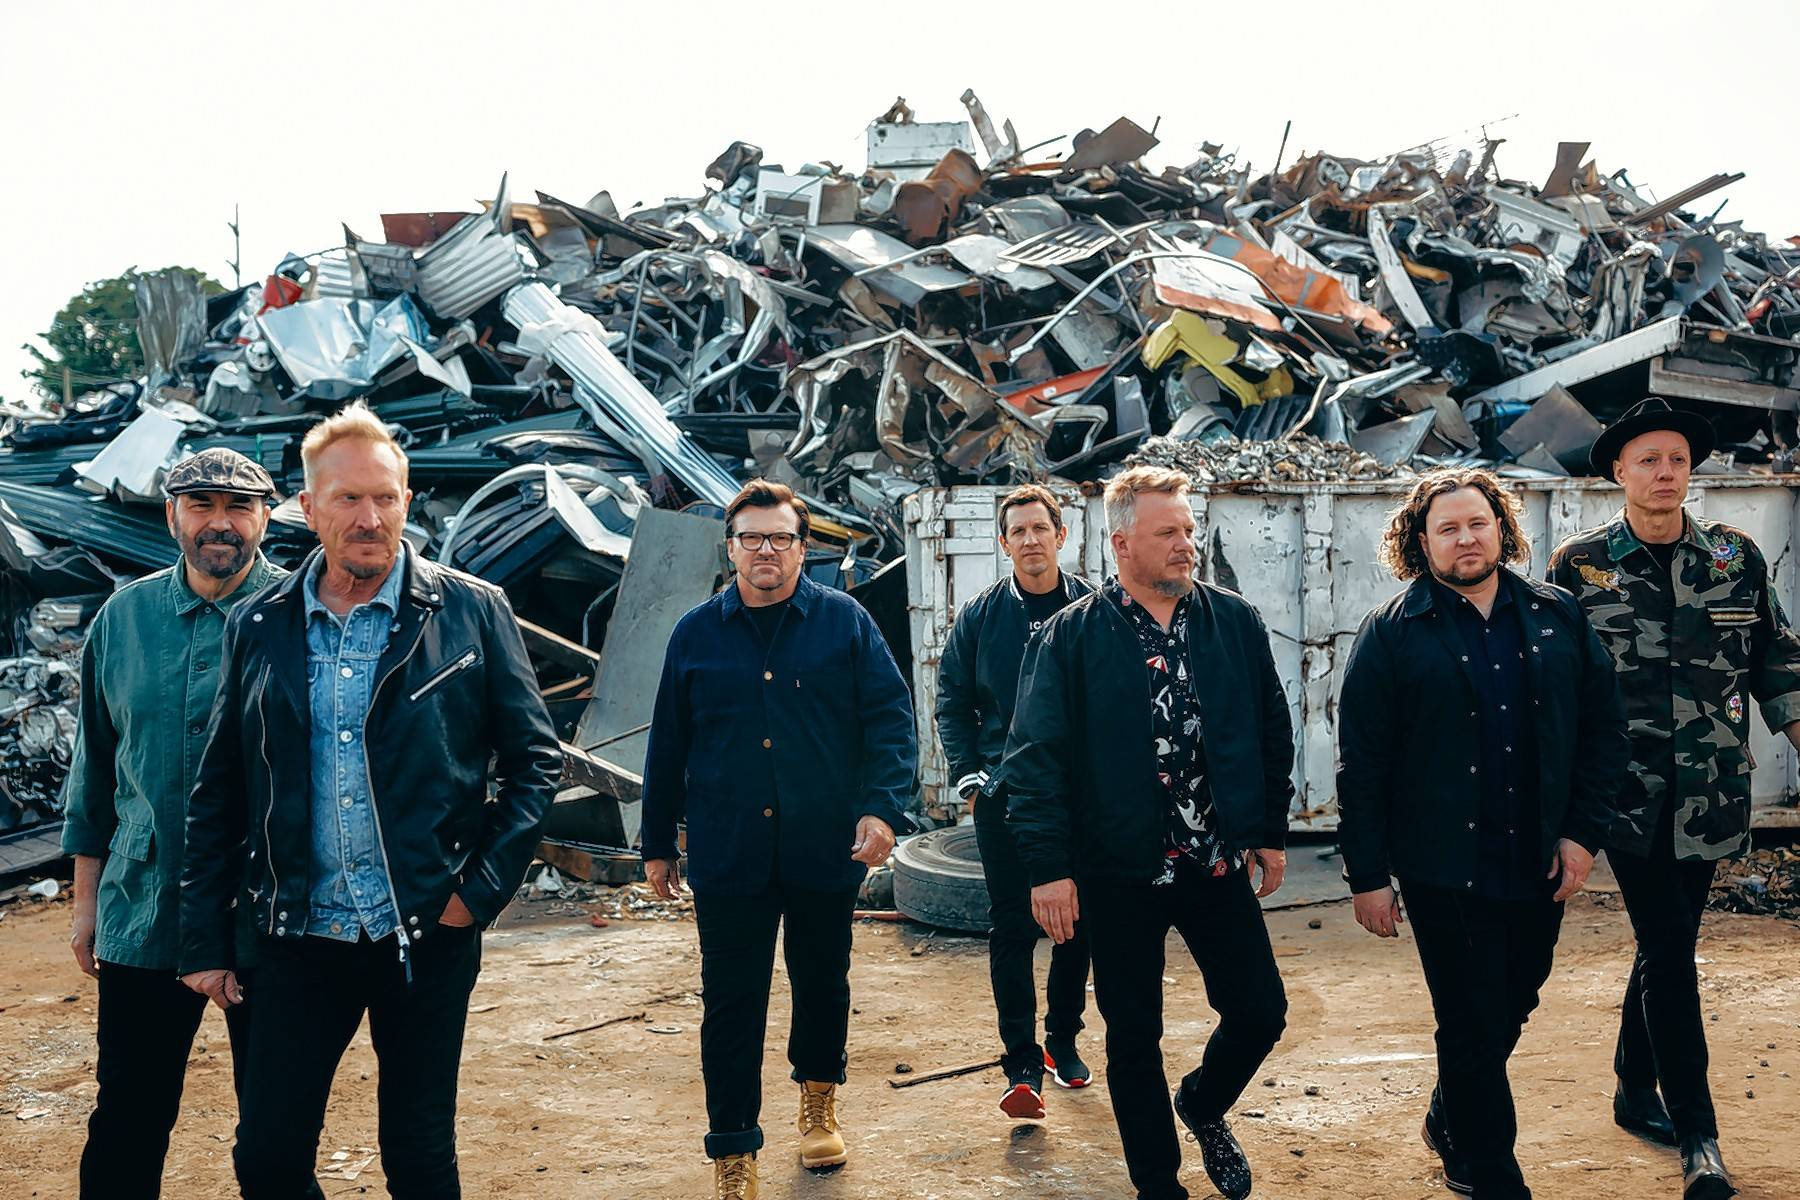 NewSong is one of the headliners at Winter Jam 2018, a Christian music tour coming to the Allstate Arena on Friday, March 30.